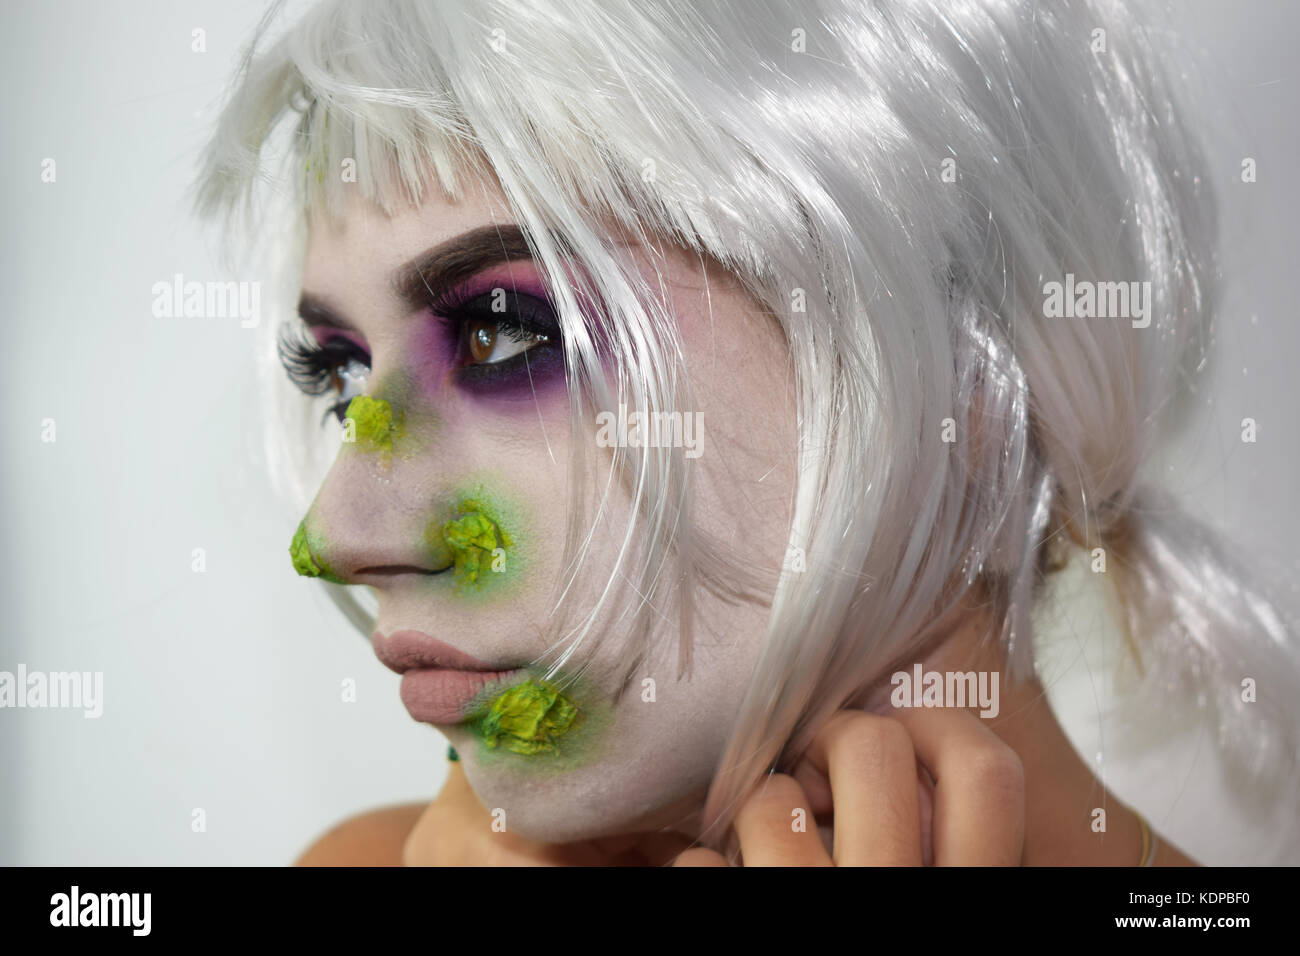 Halloween White And Green Witch Makeup Stock Photo ...